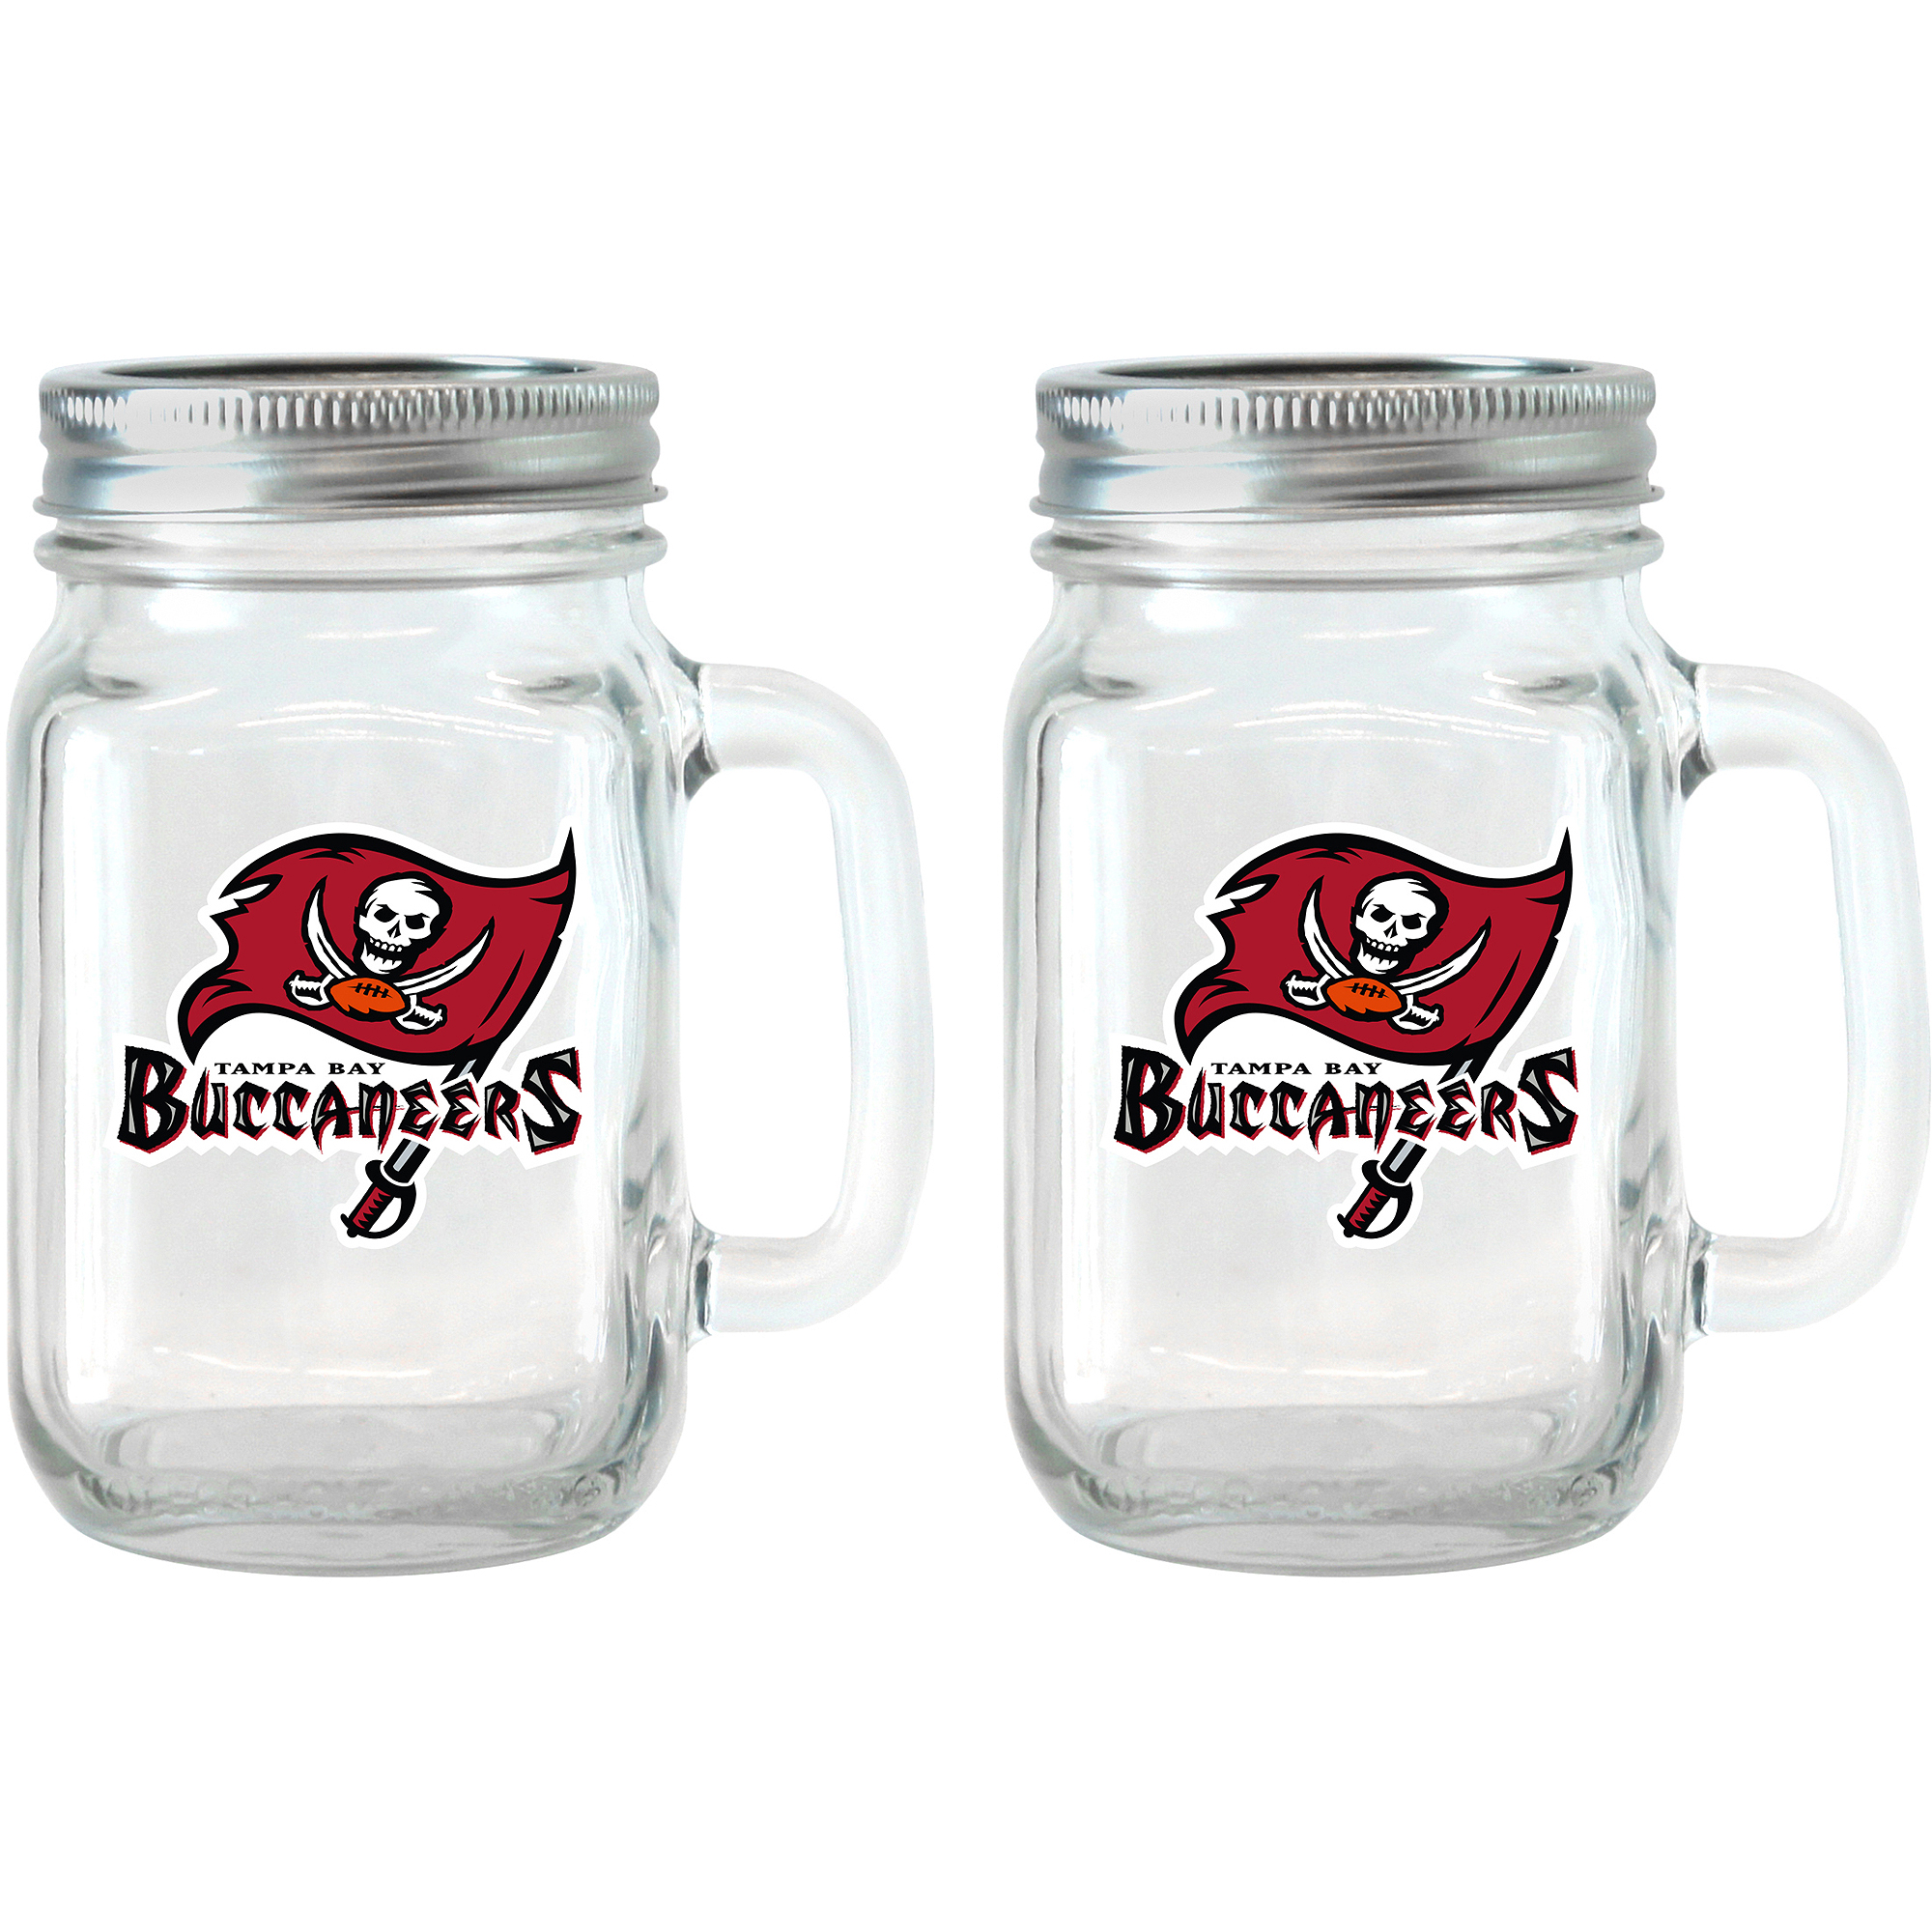 NFL 16 oz Tampa Bay Buccaneers Glass Jar with Lid and Handle, 2pk